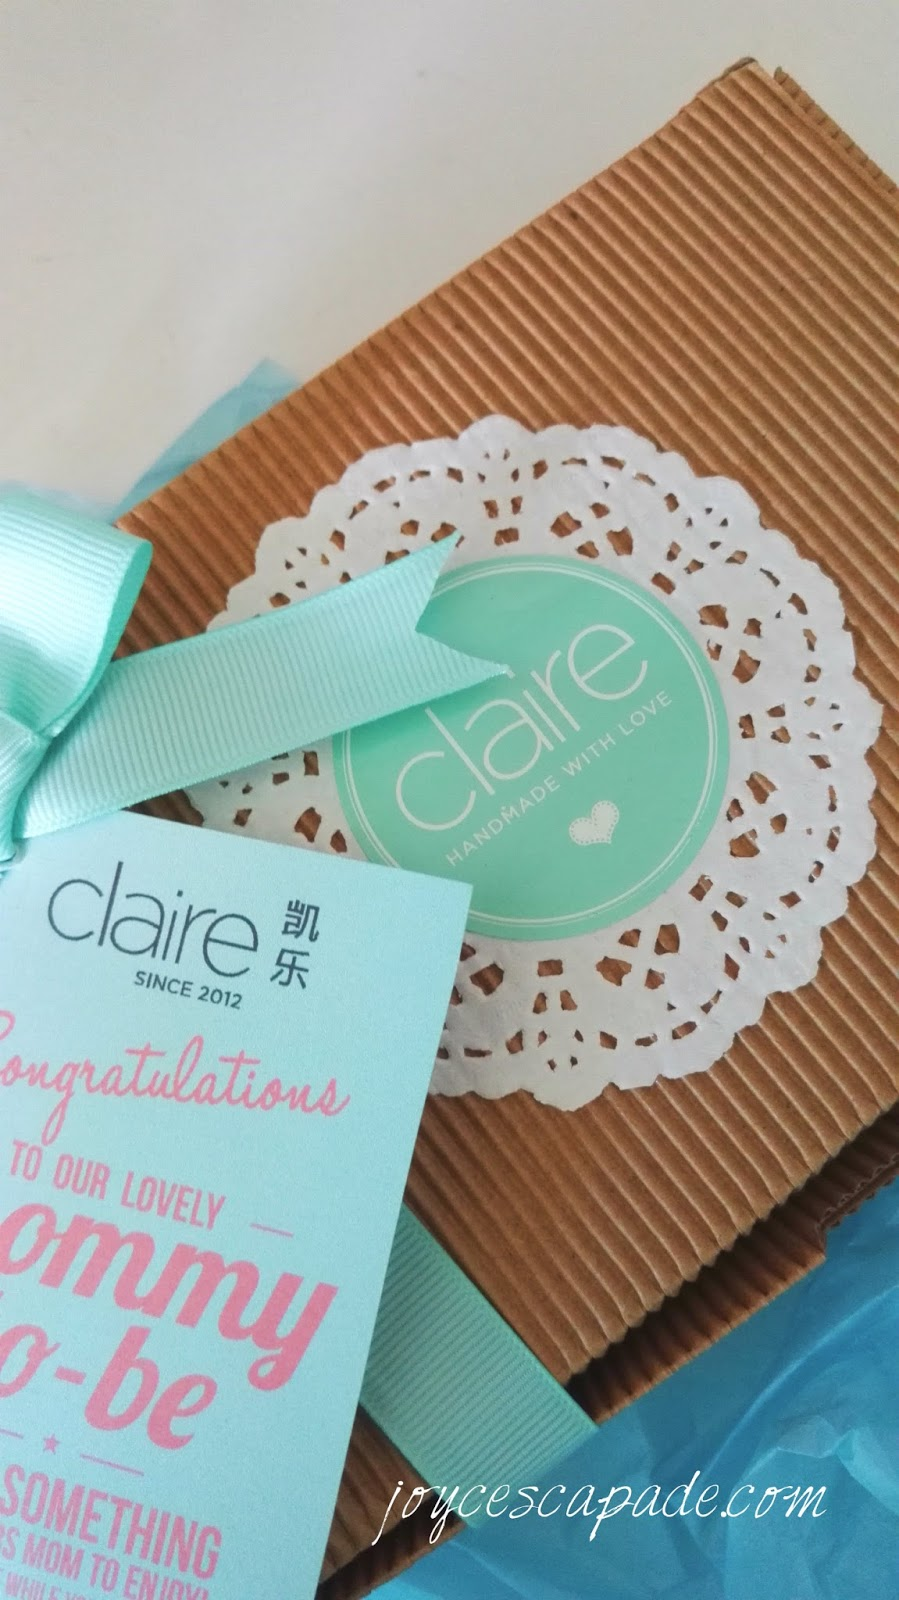 pampering done right with claire organics